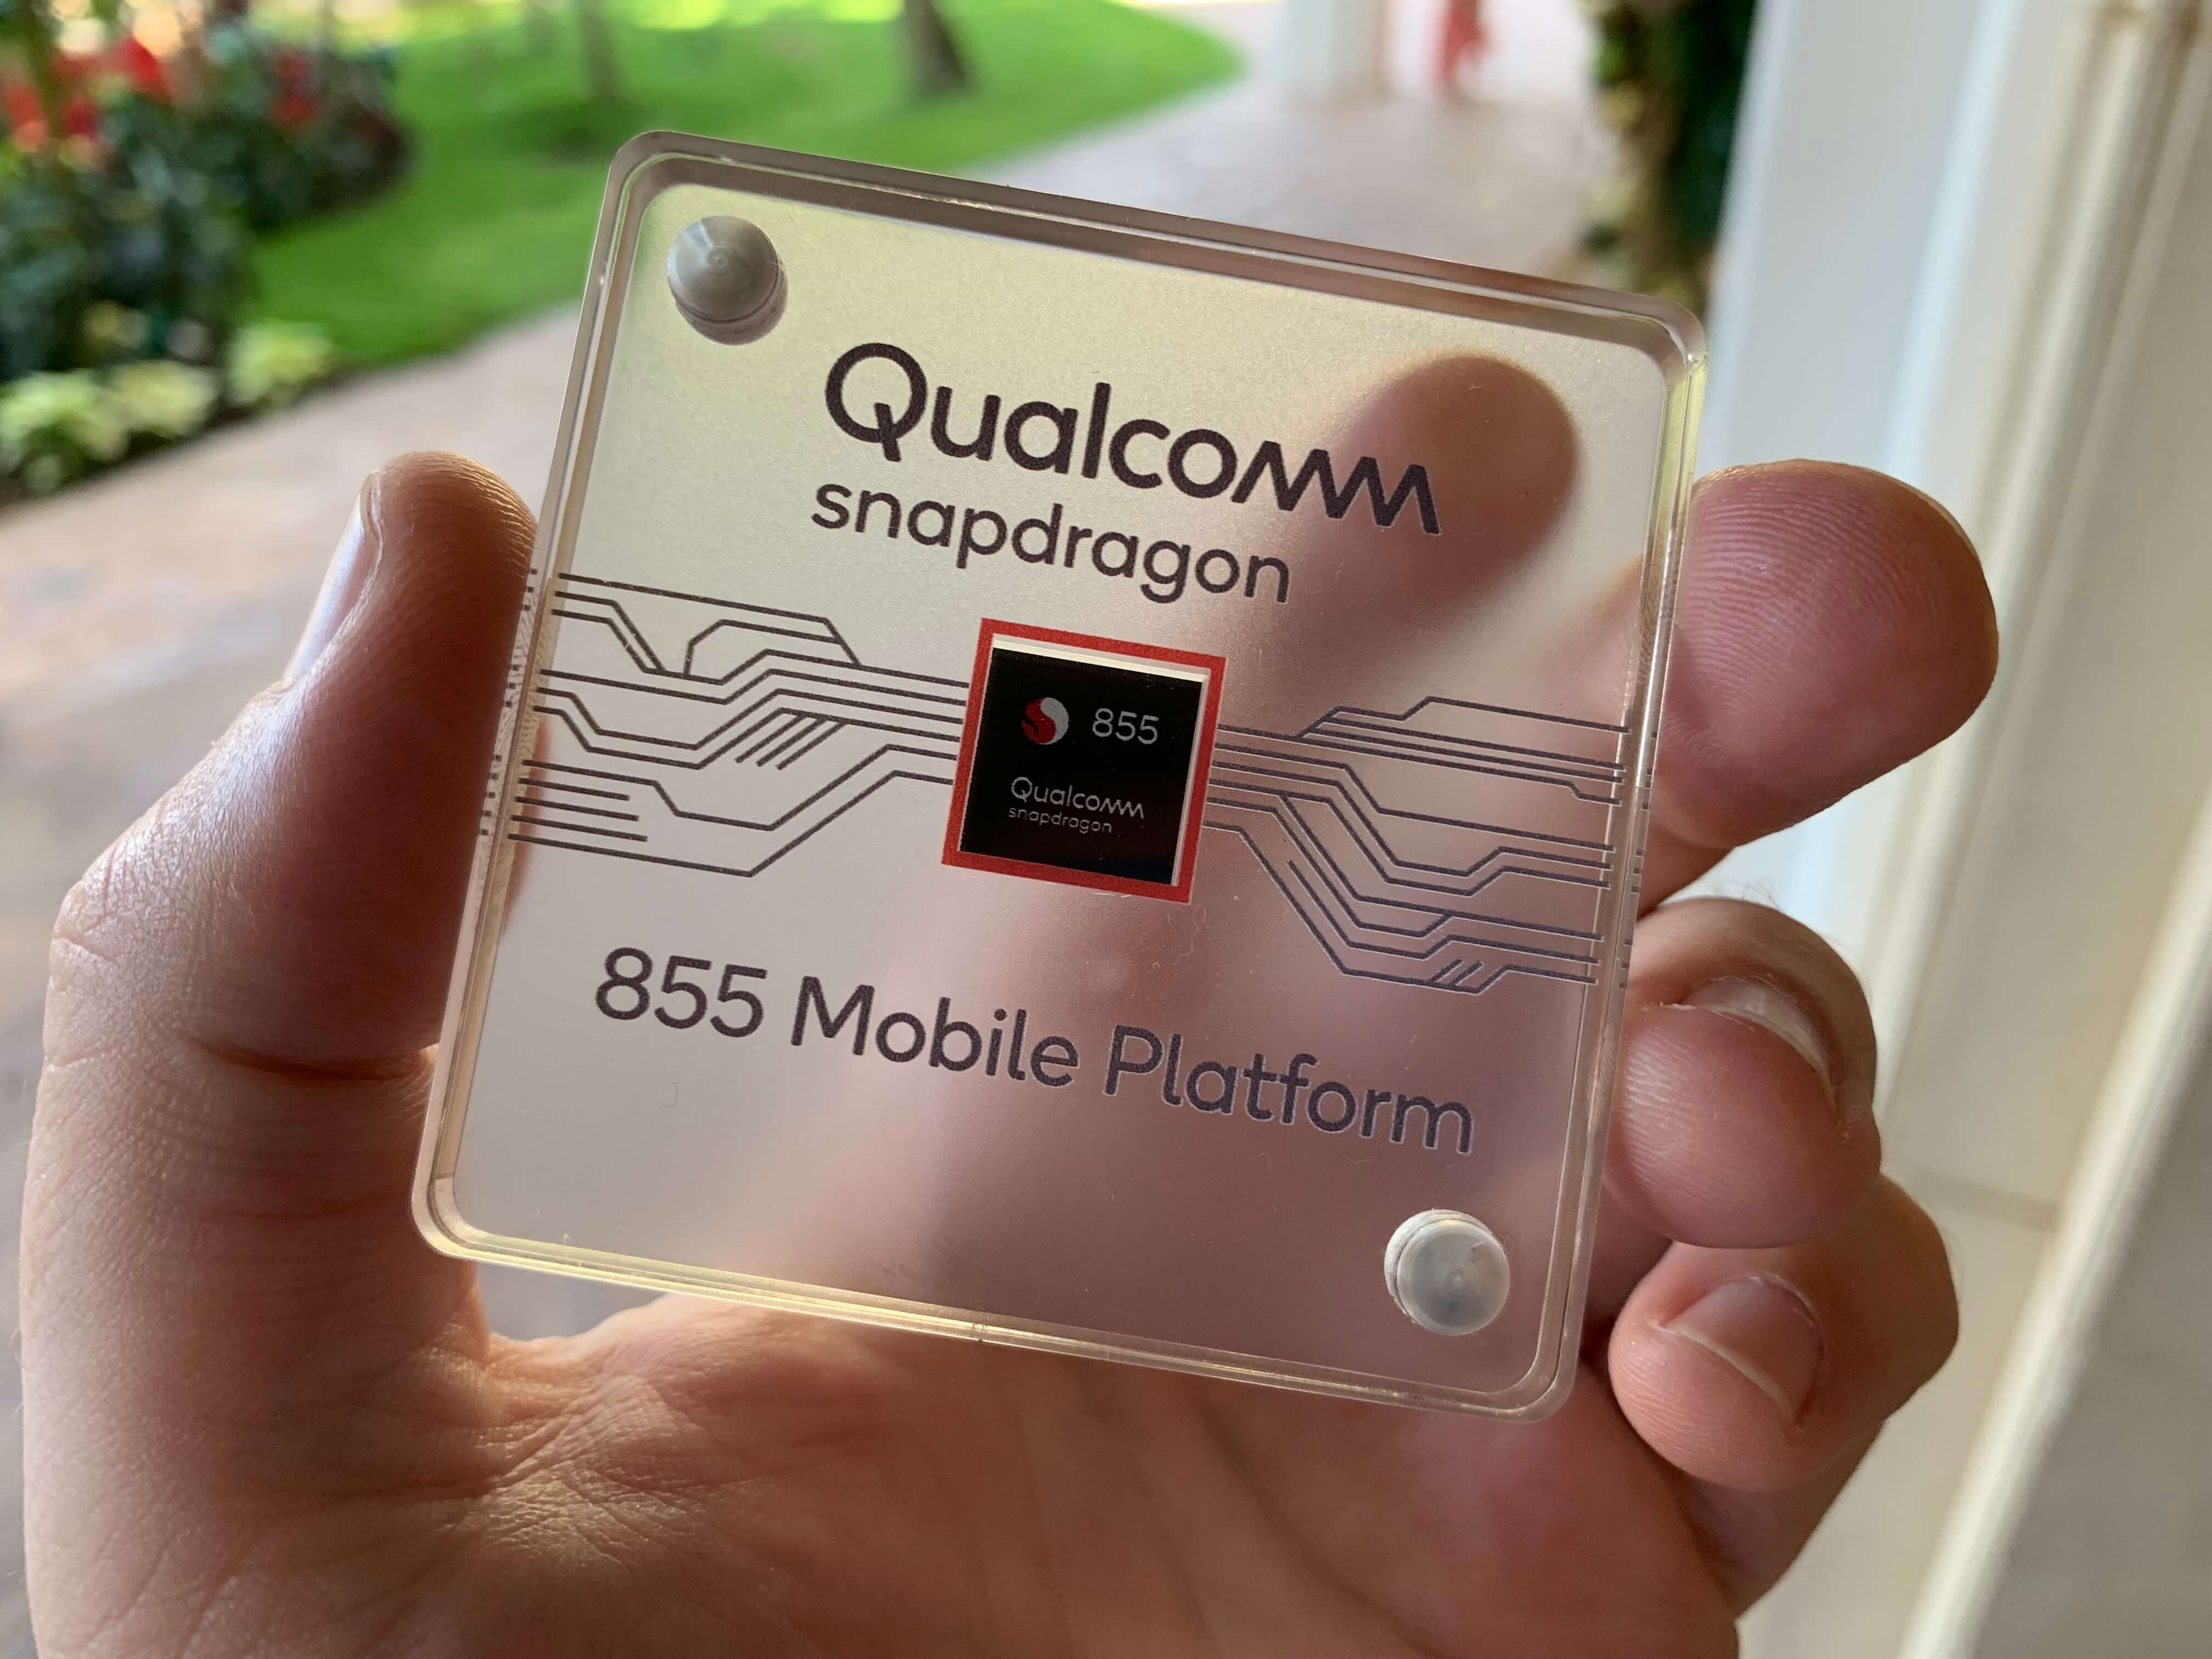 Qualcomm has introduced the most powerful processor for laptops